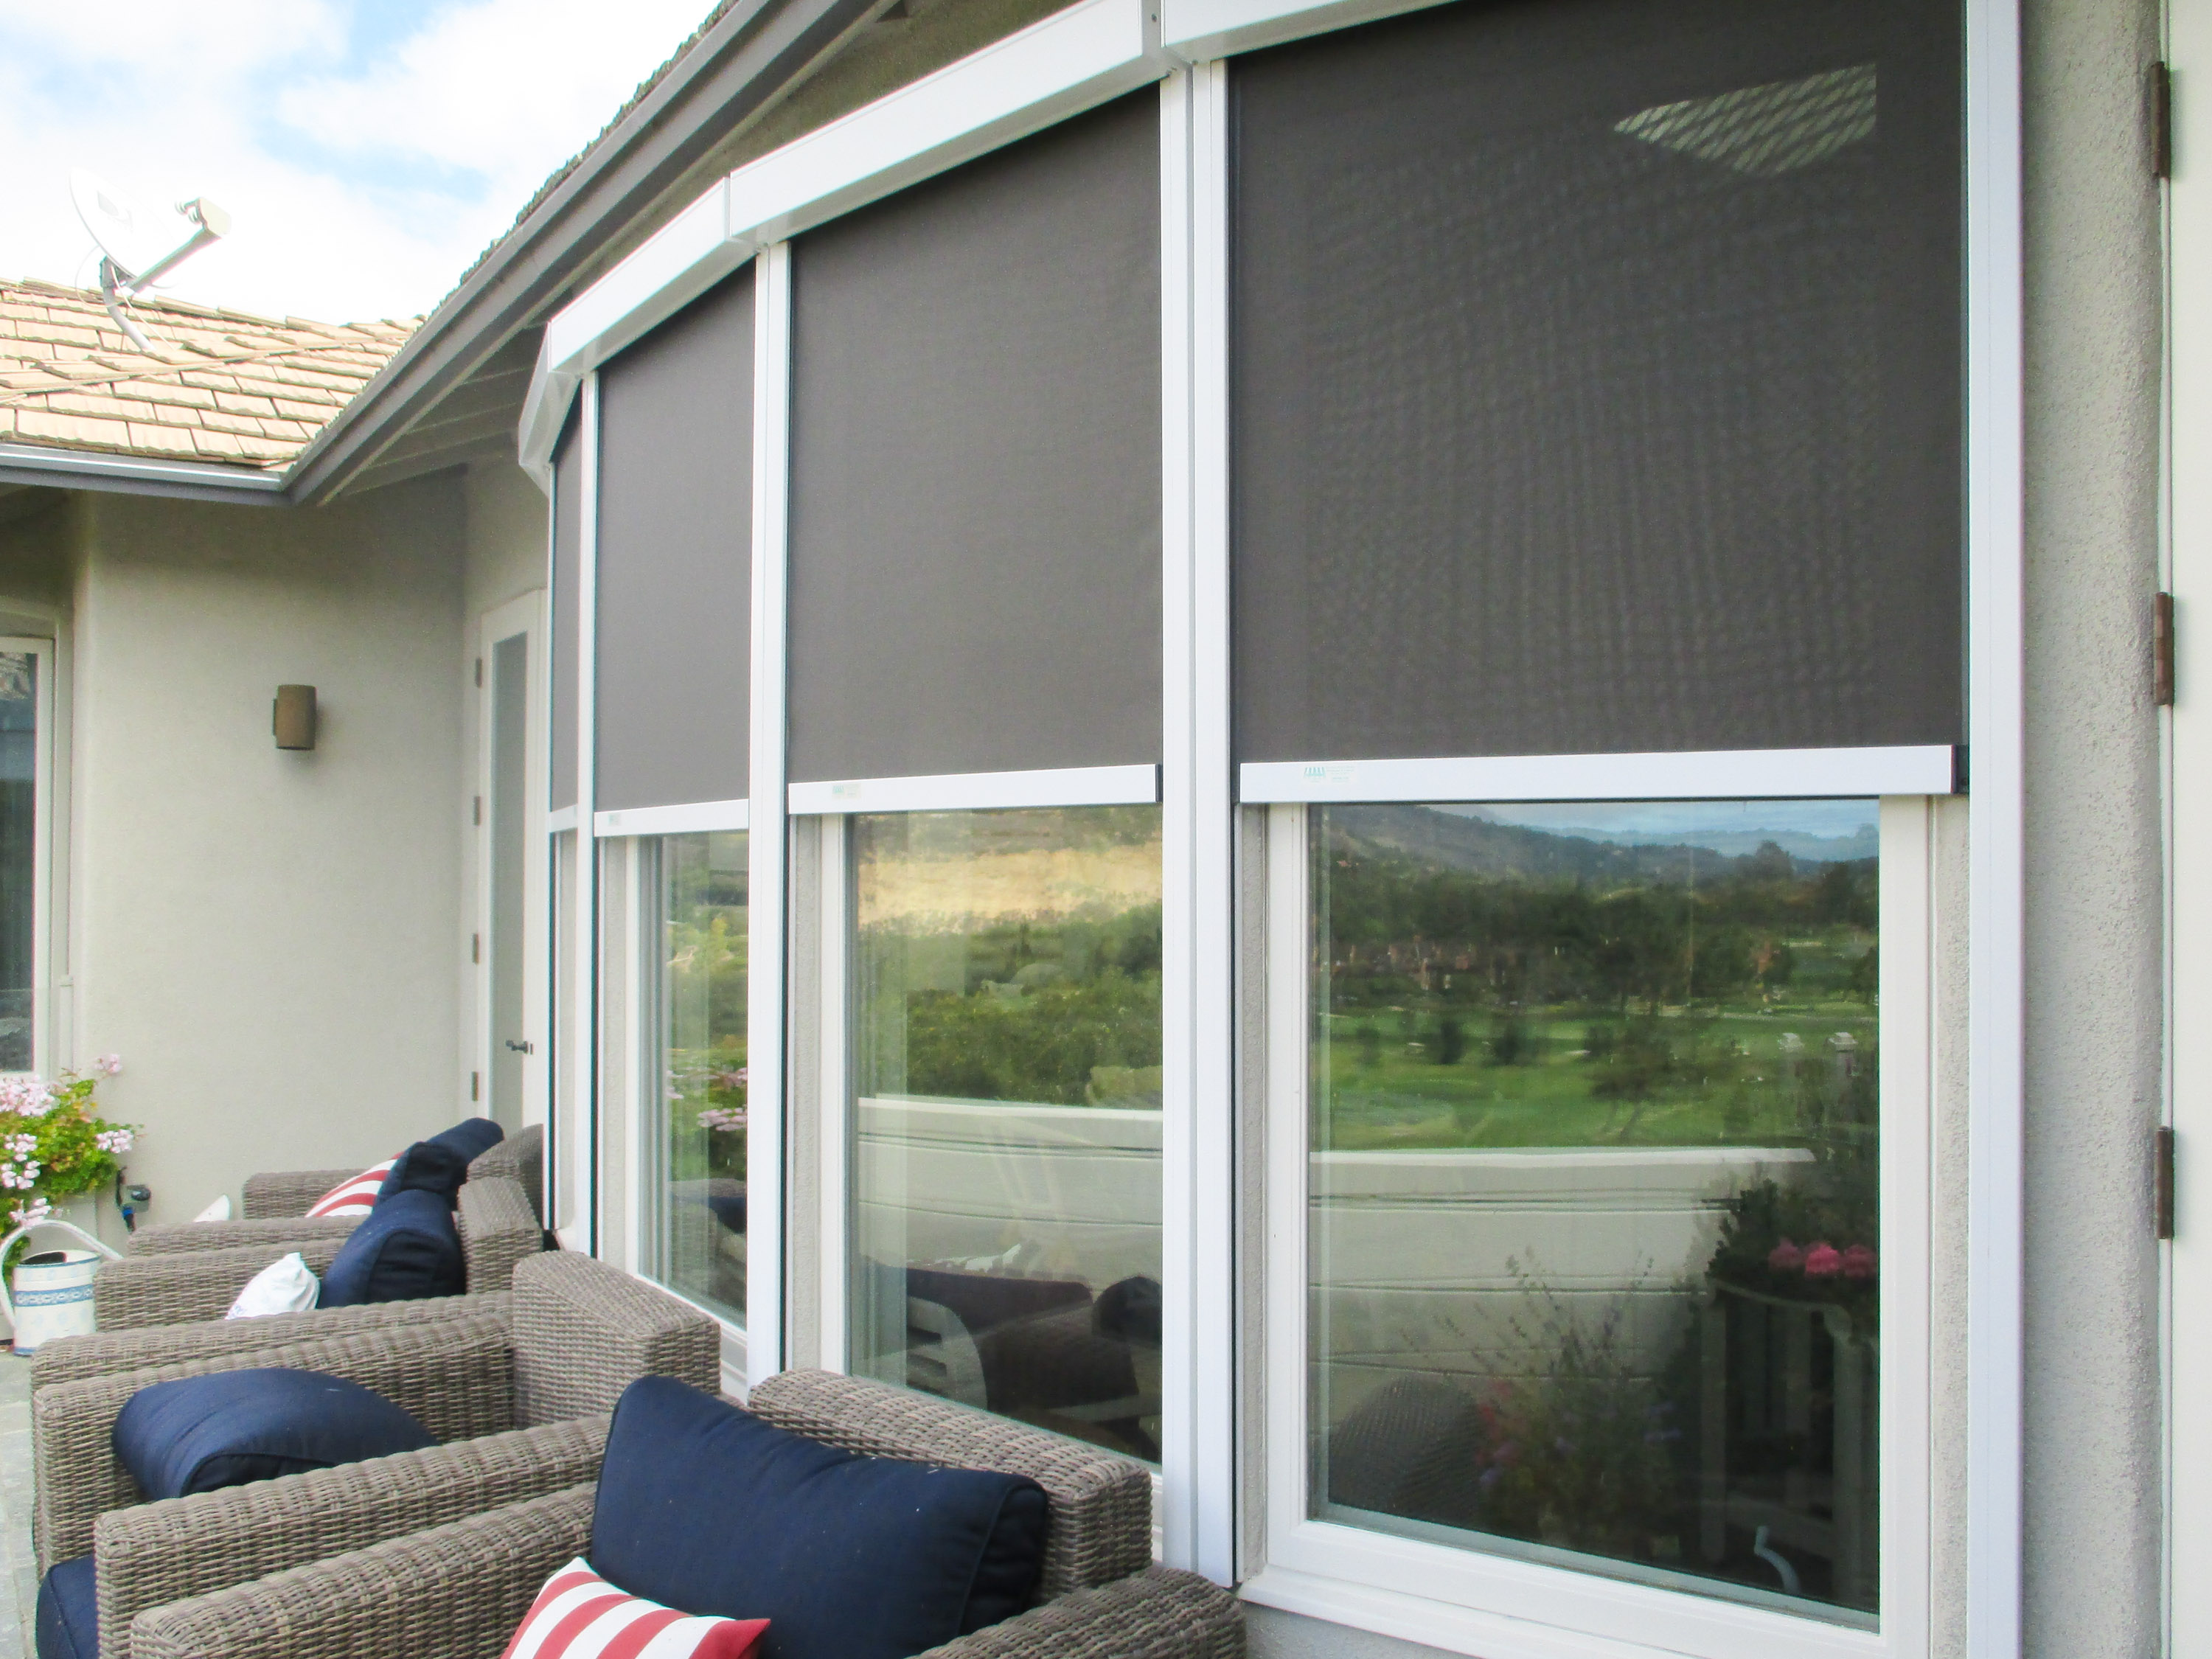 Retractable solar screens ers shading san jose ca for Windows with retractable screens